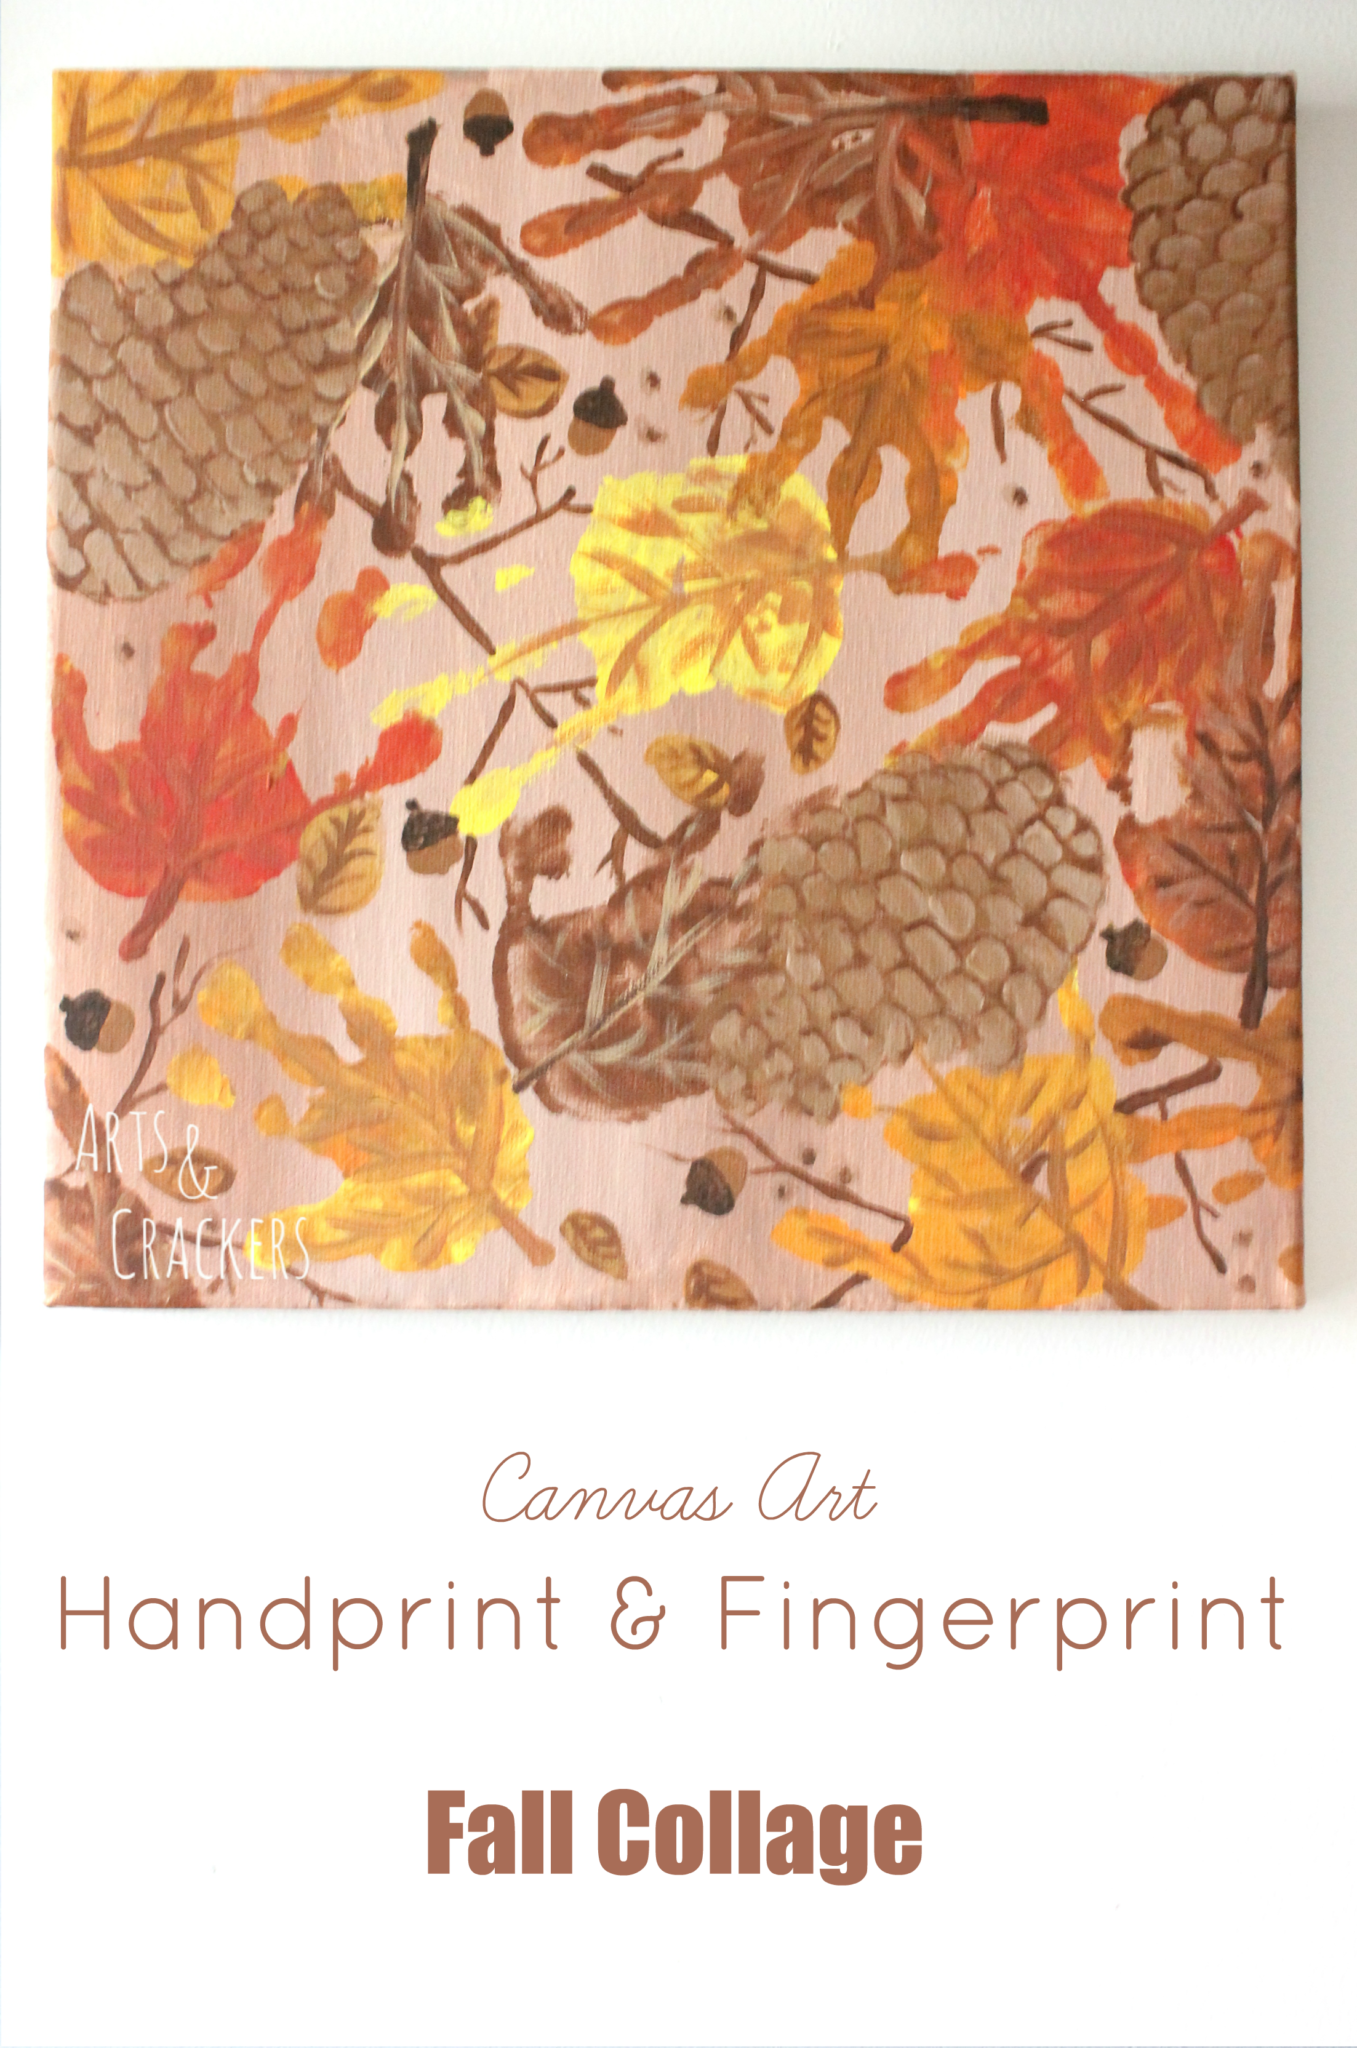 Handprint and Fingerprint Fall Collage